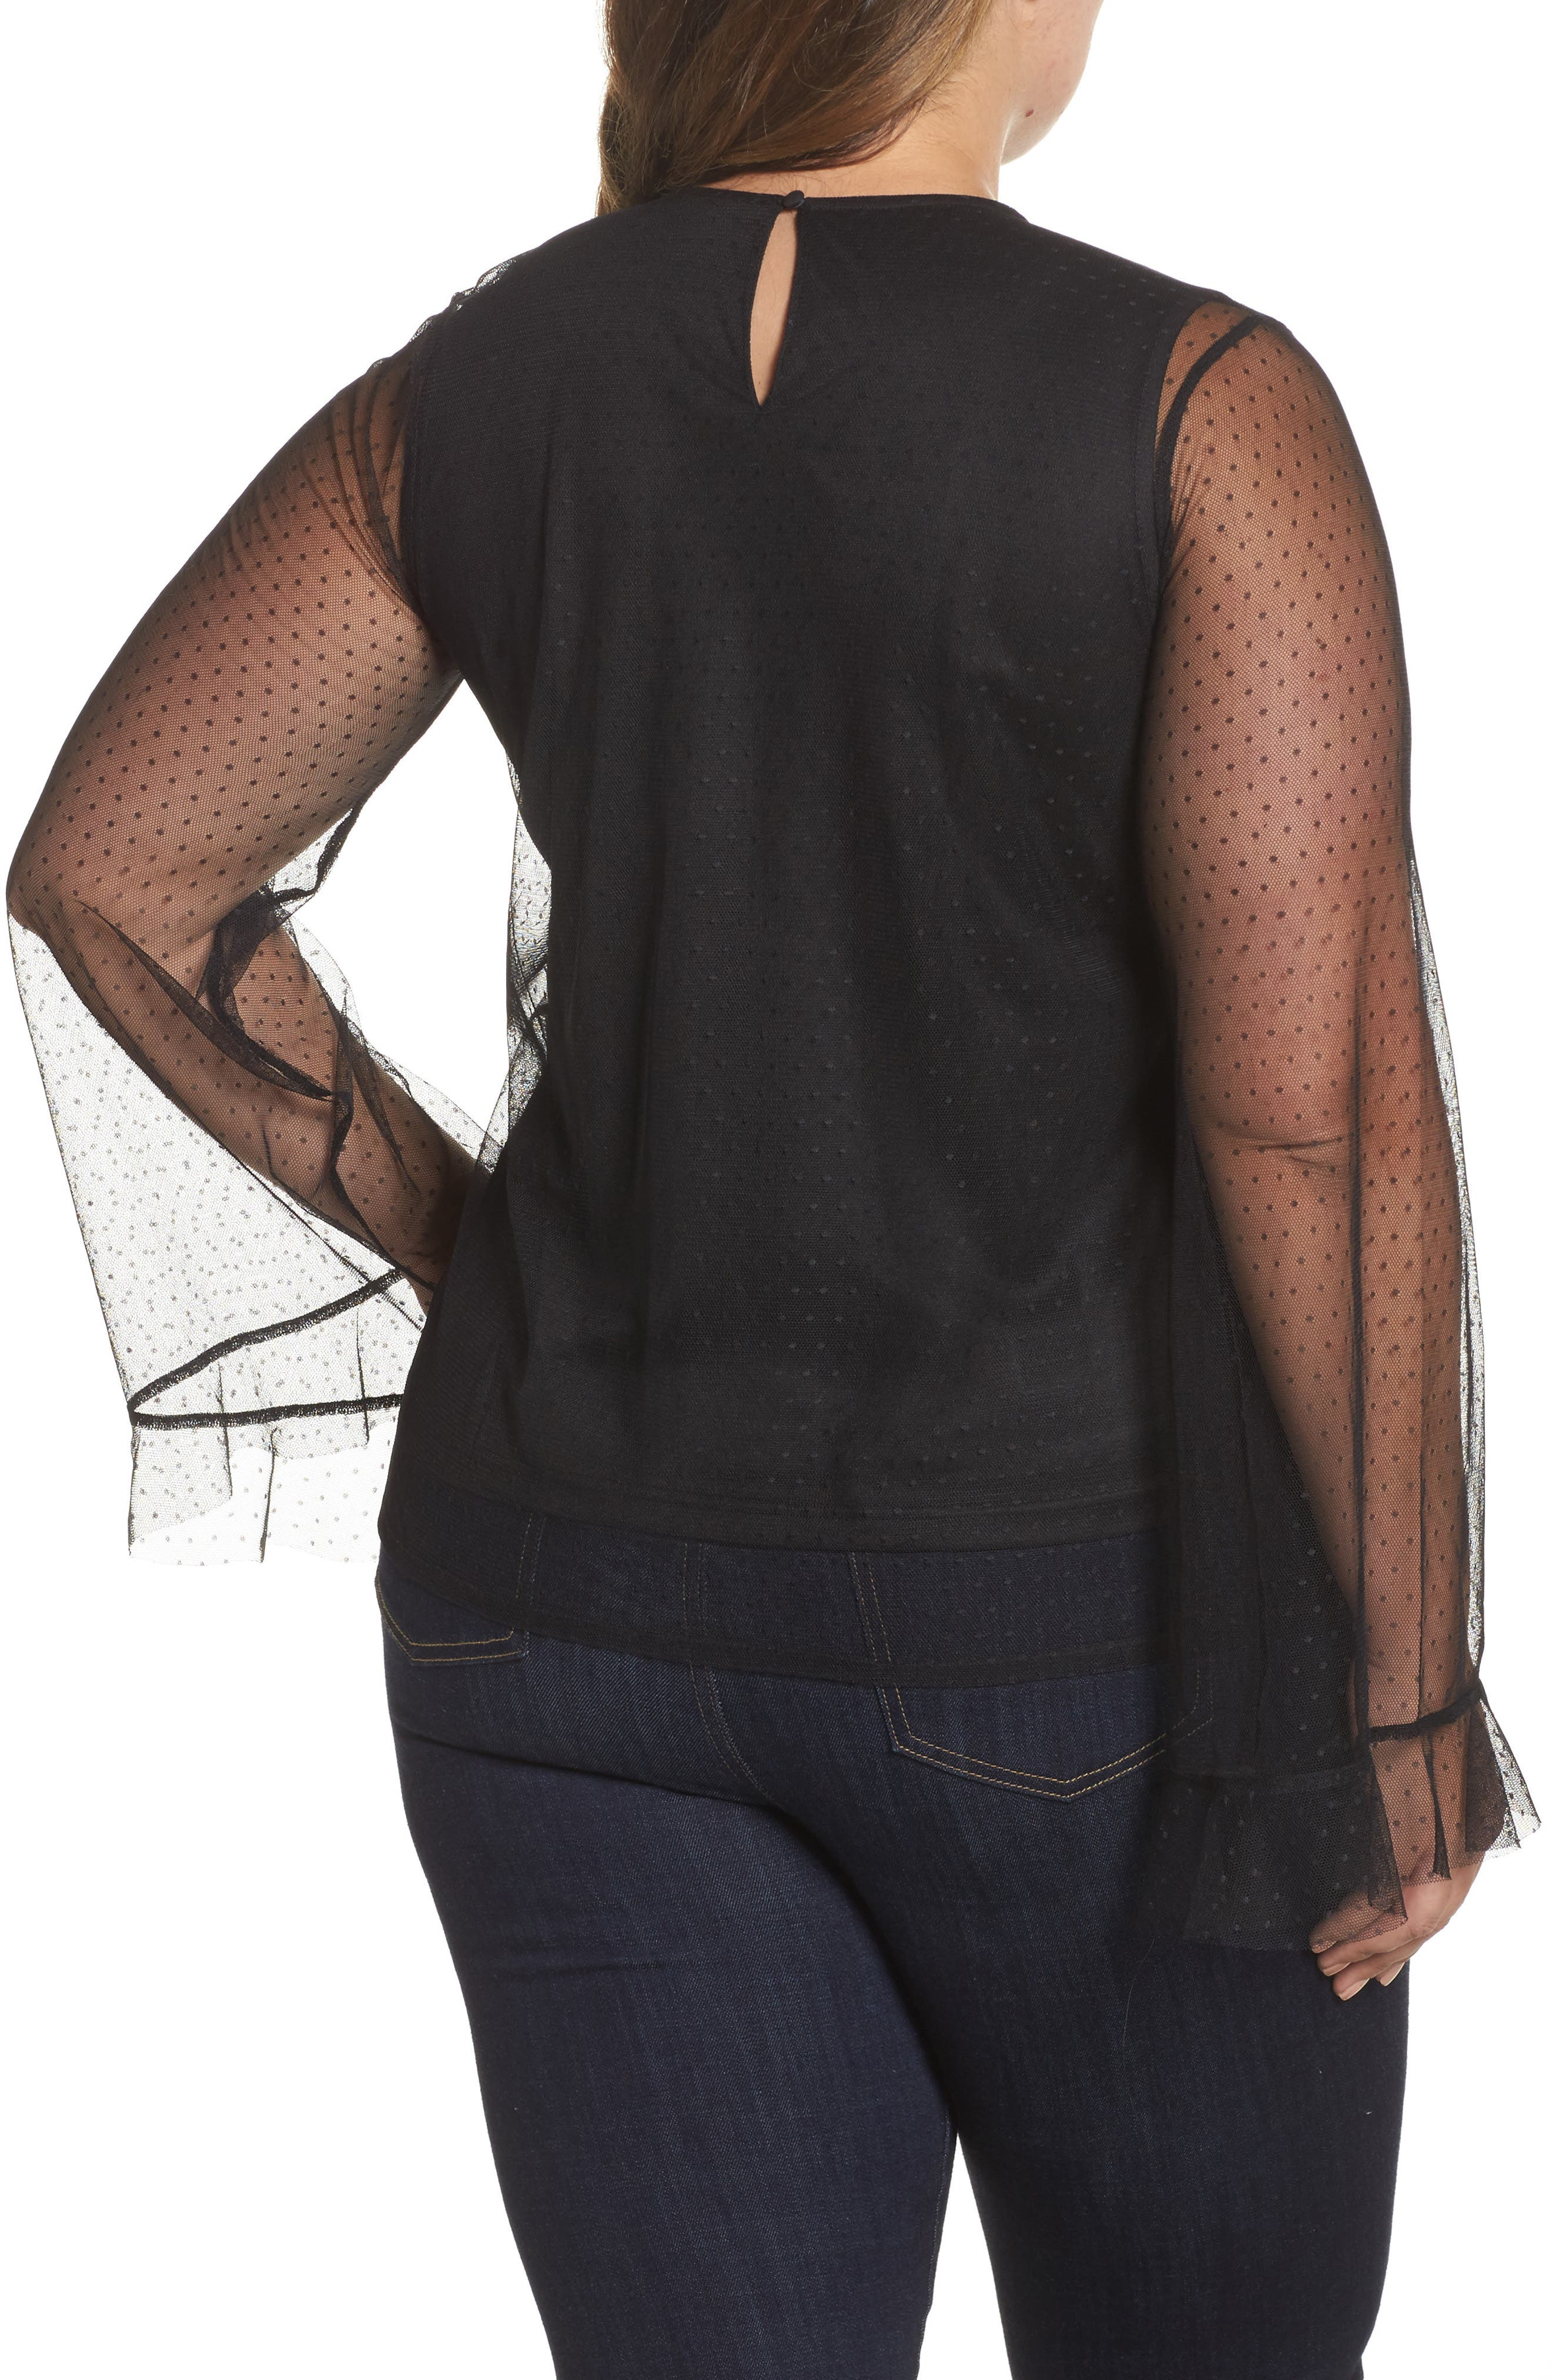 Alternate Image 2  - LOST INK Embroidered Swing Top (Plus Size)